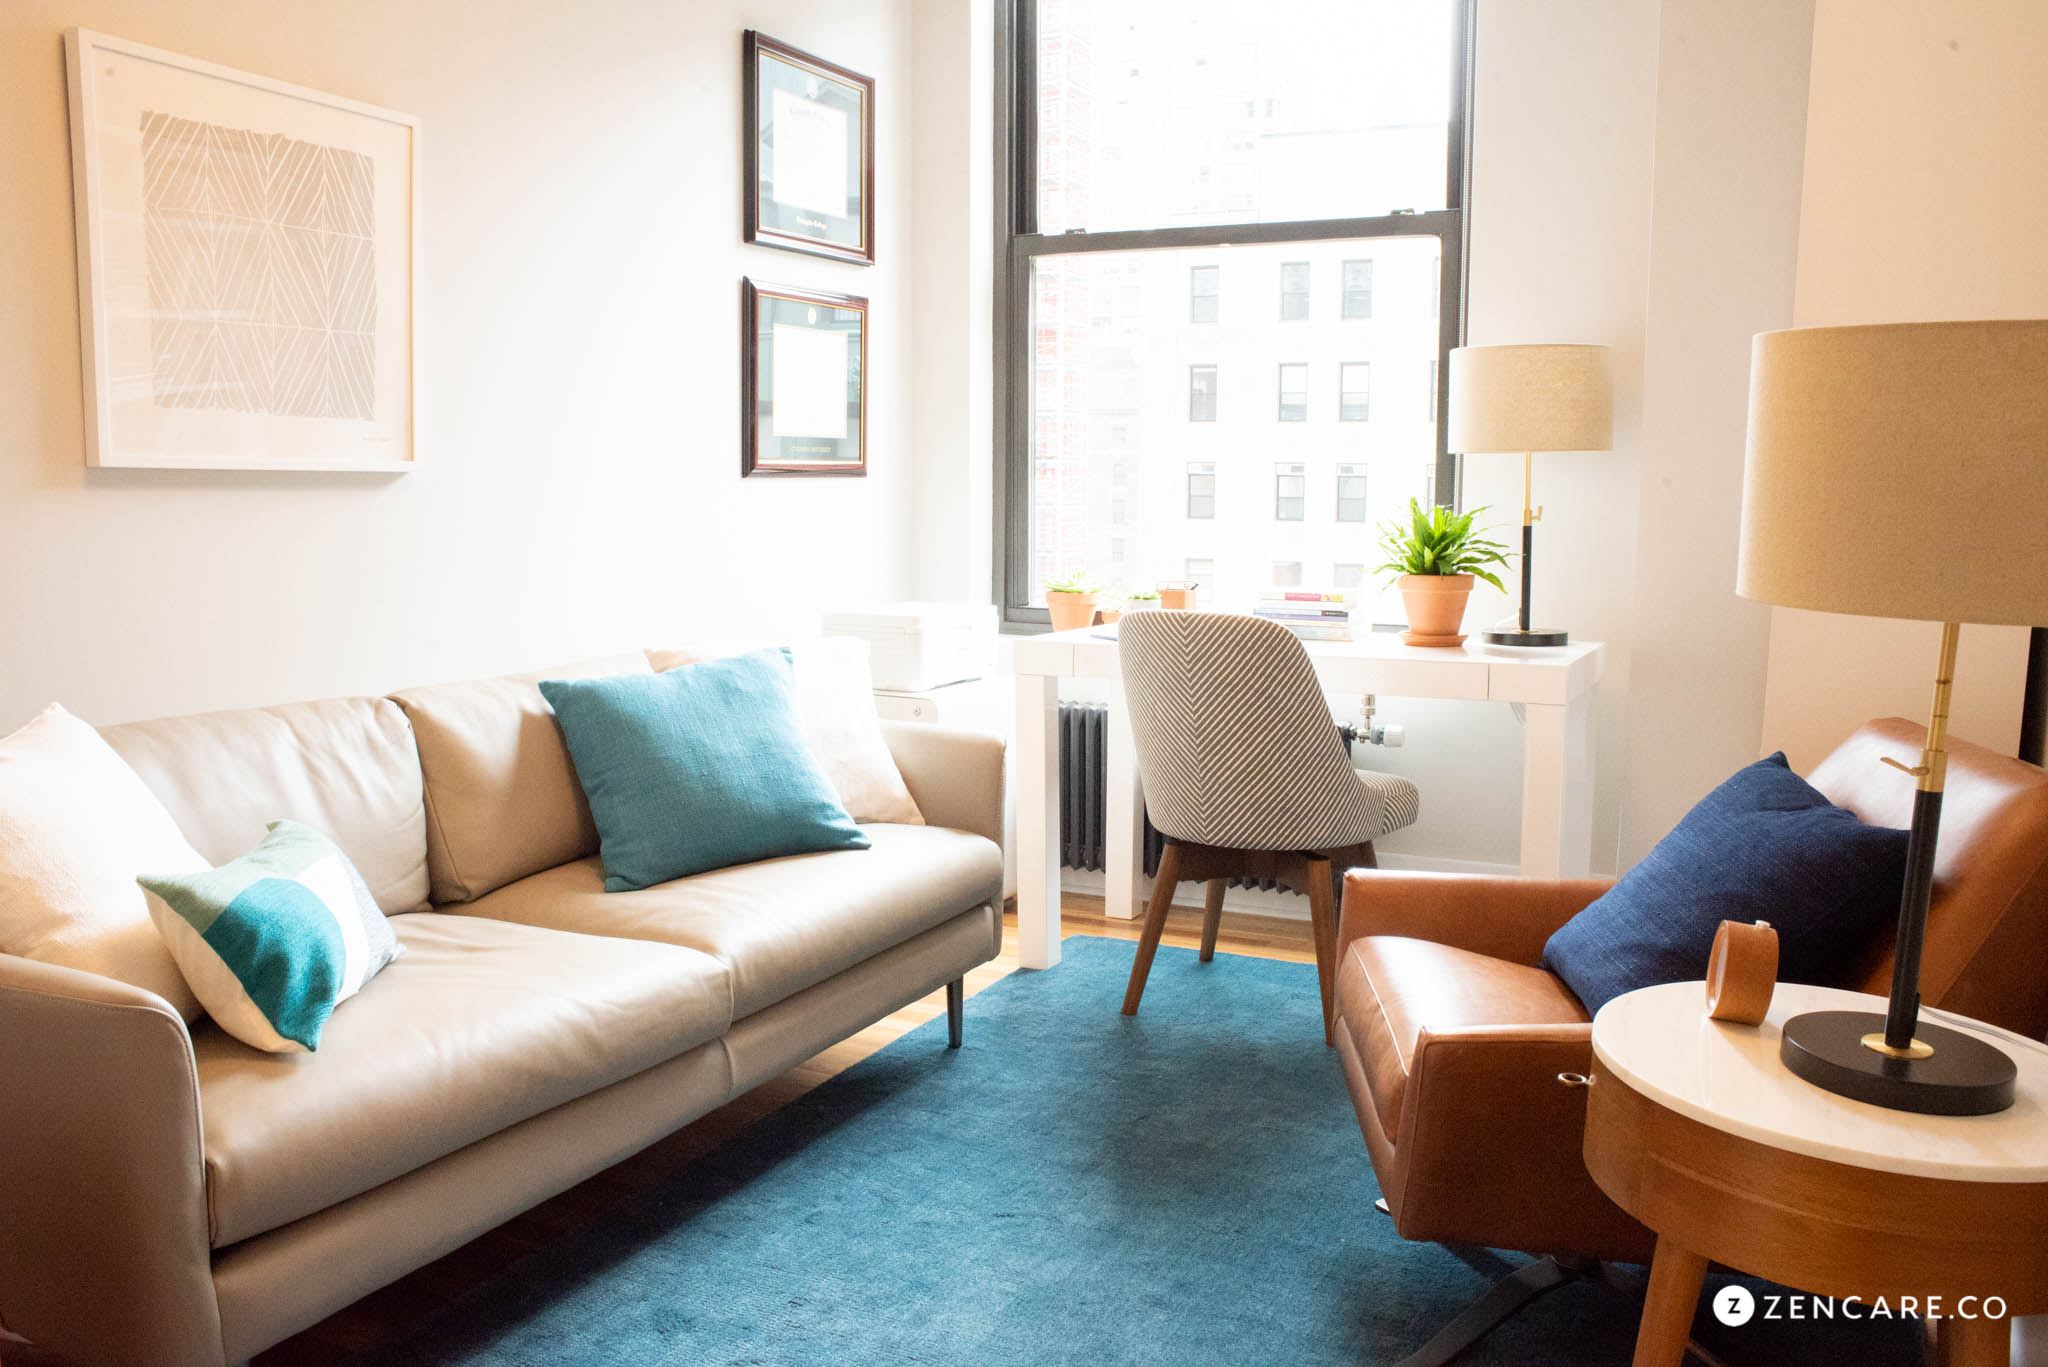 DBT Therapy Near Me: How & Where To Find DBT Therapists In NYC